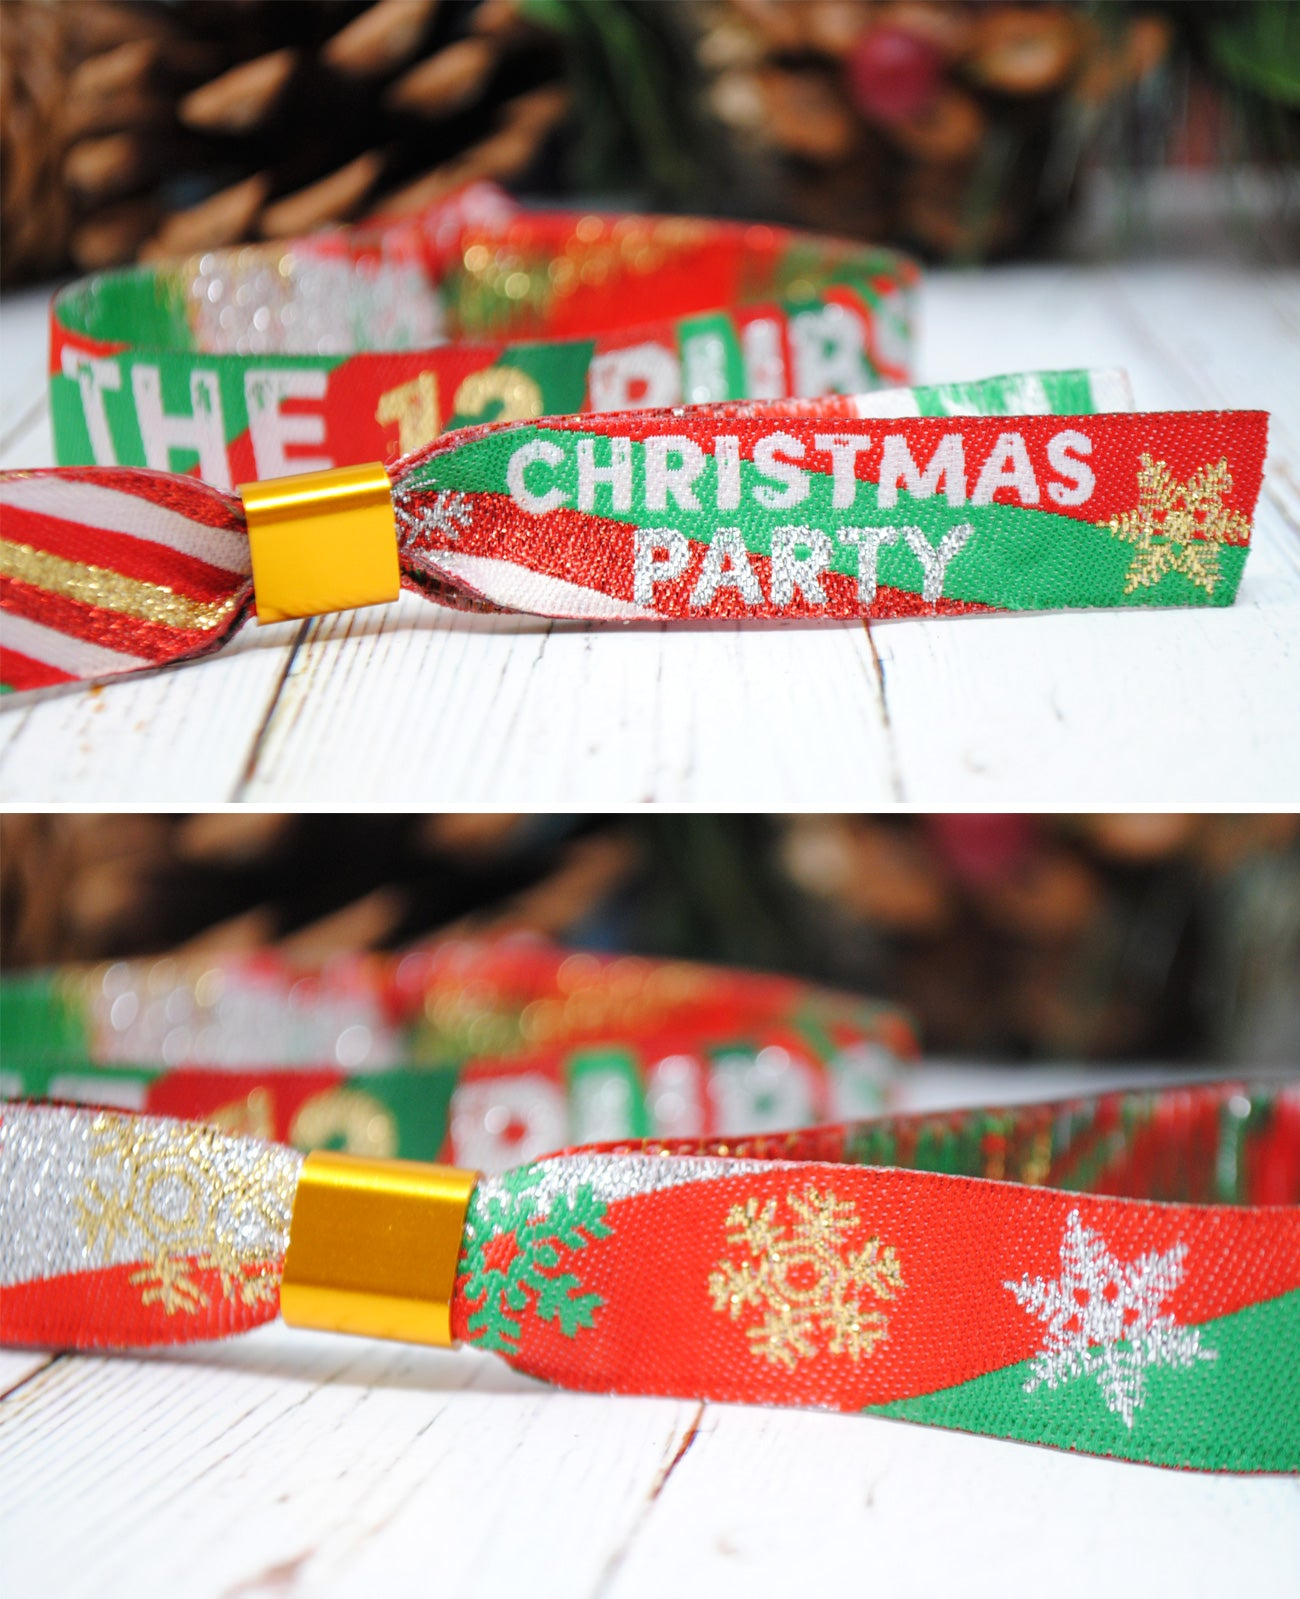 the 12 pubs christmas party wristband accessories